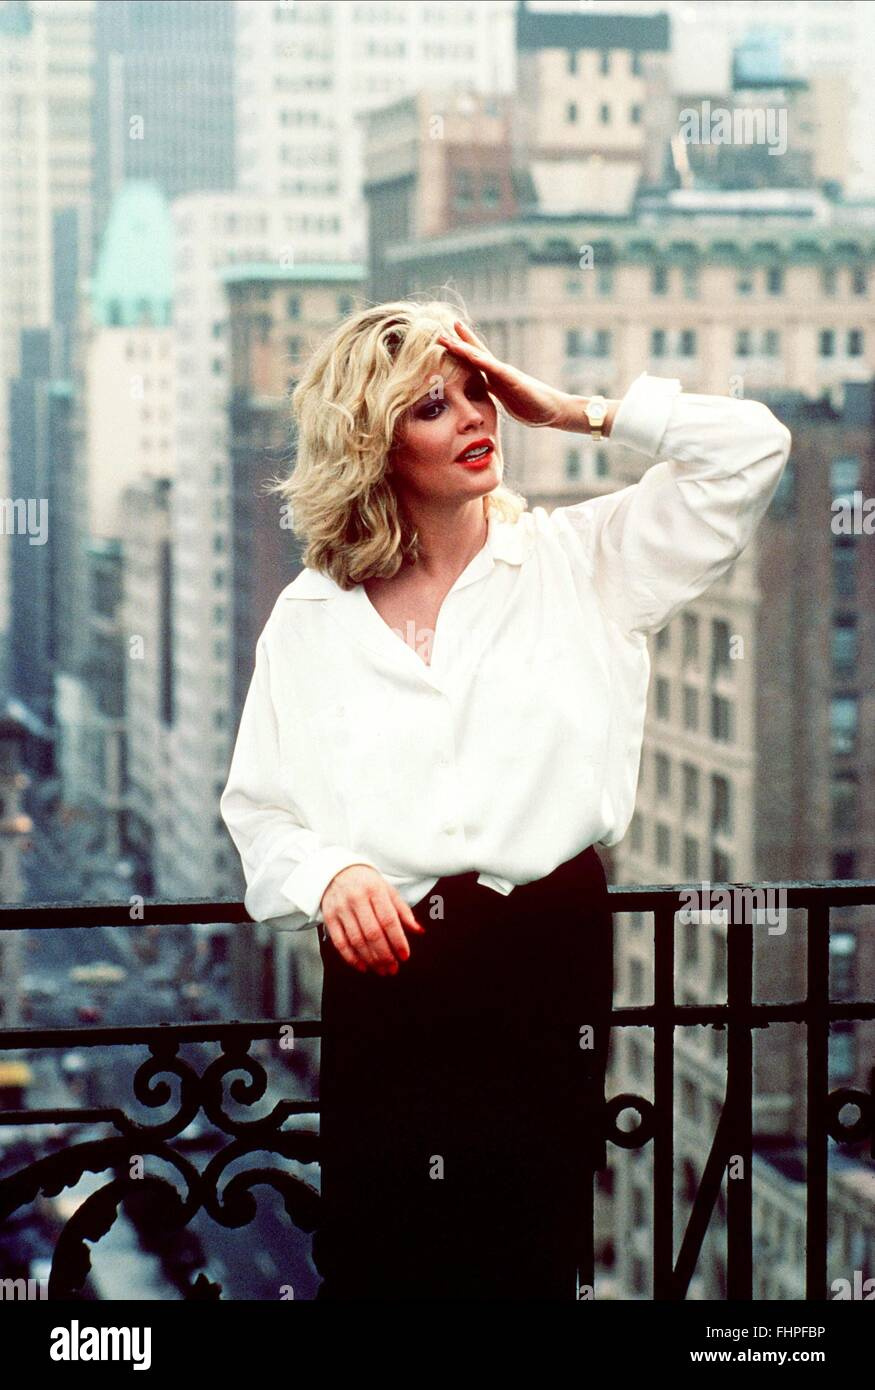 Kim Basinger 9 Semaines 1/2 : basinger, semaines, BASINGER, WEEKS;, WEEKS, Stock, Photo, Alamy